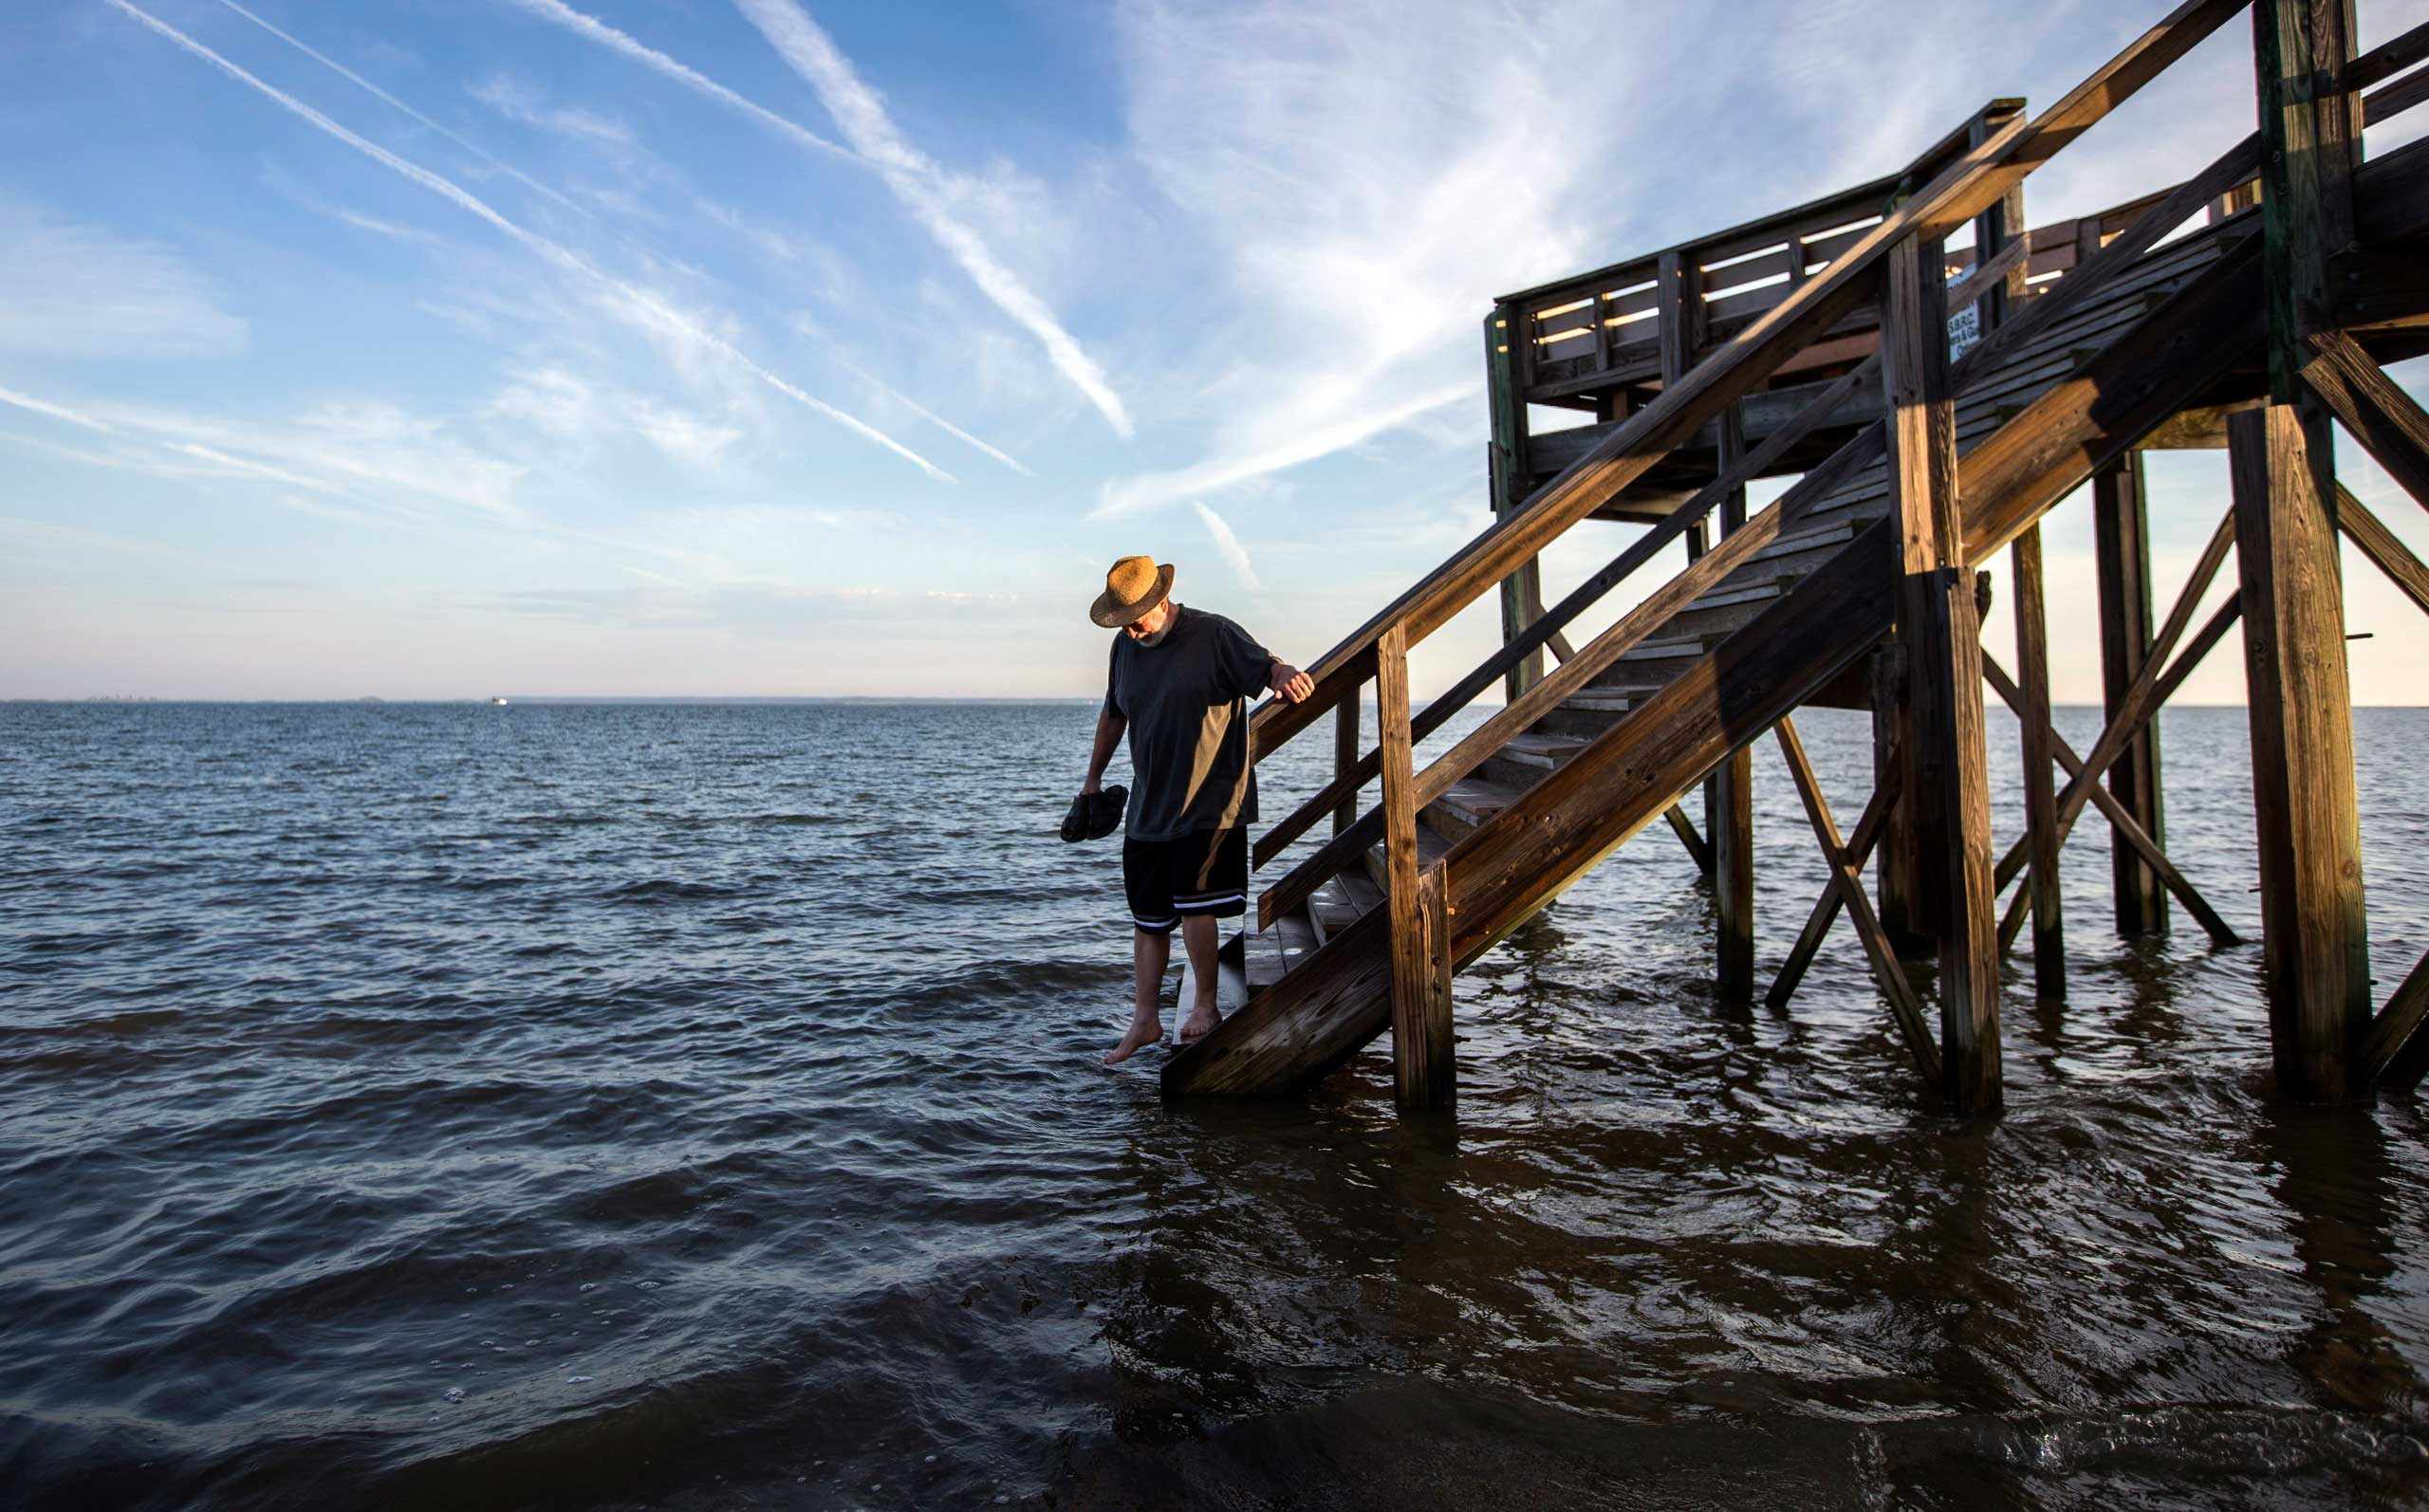 Visiting the area for the first time, 64-year-old Fran Glod of Oswego, N.Y, walks down the steps to the beach which is covered by a king tide, an especially high tide on Tybee Island, Ga., Oct. 9, 2014.